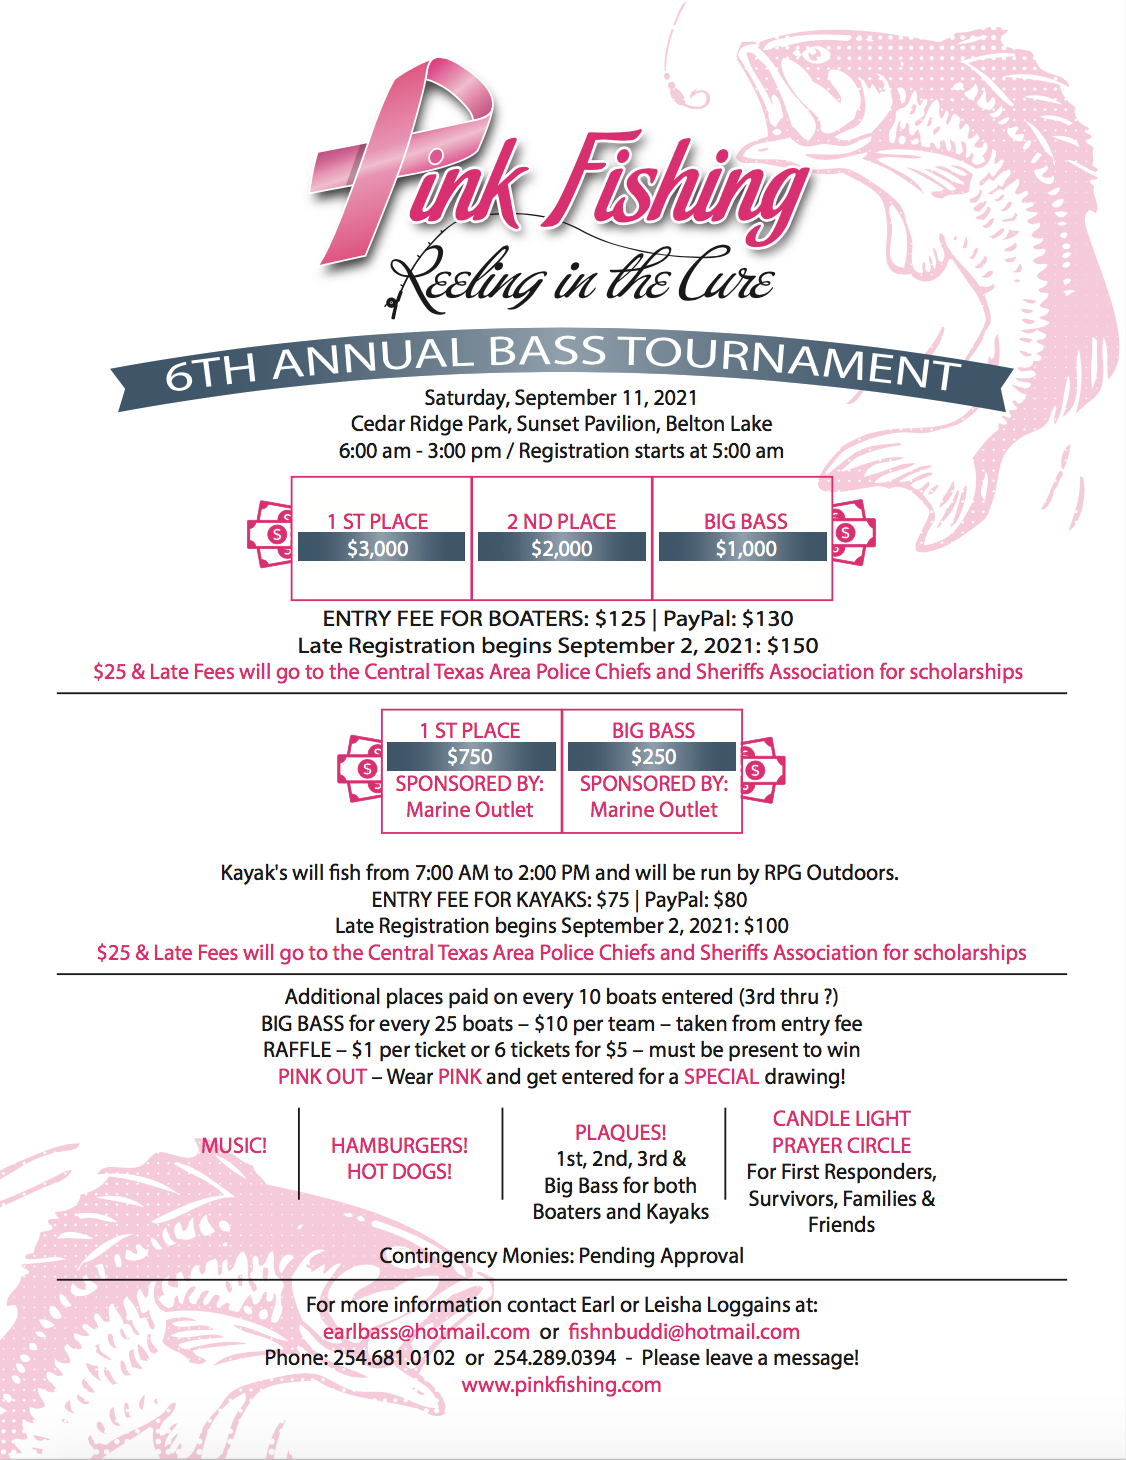 6th Annual Reeling in the Cure Tournament